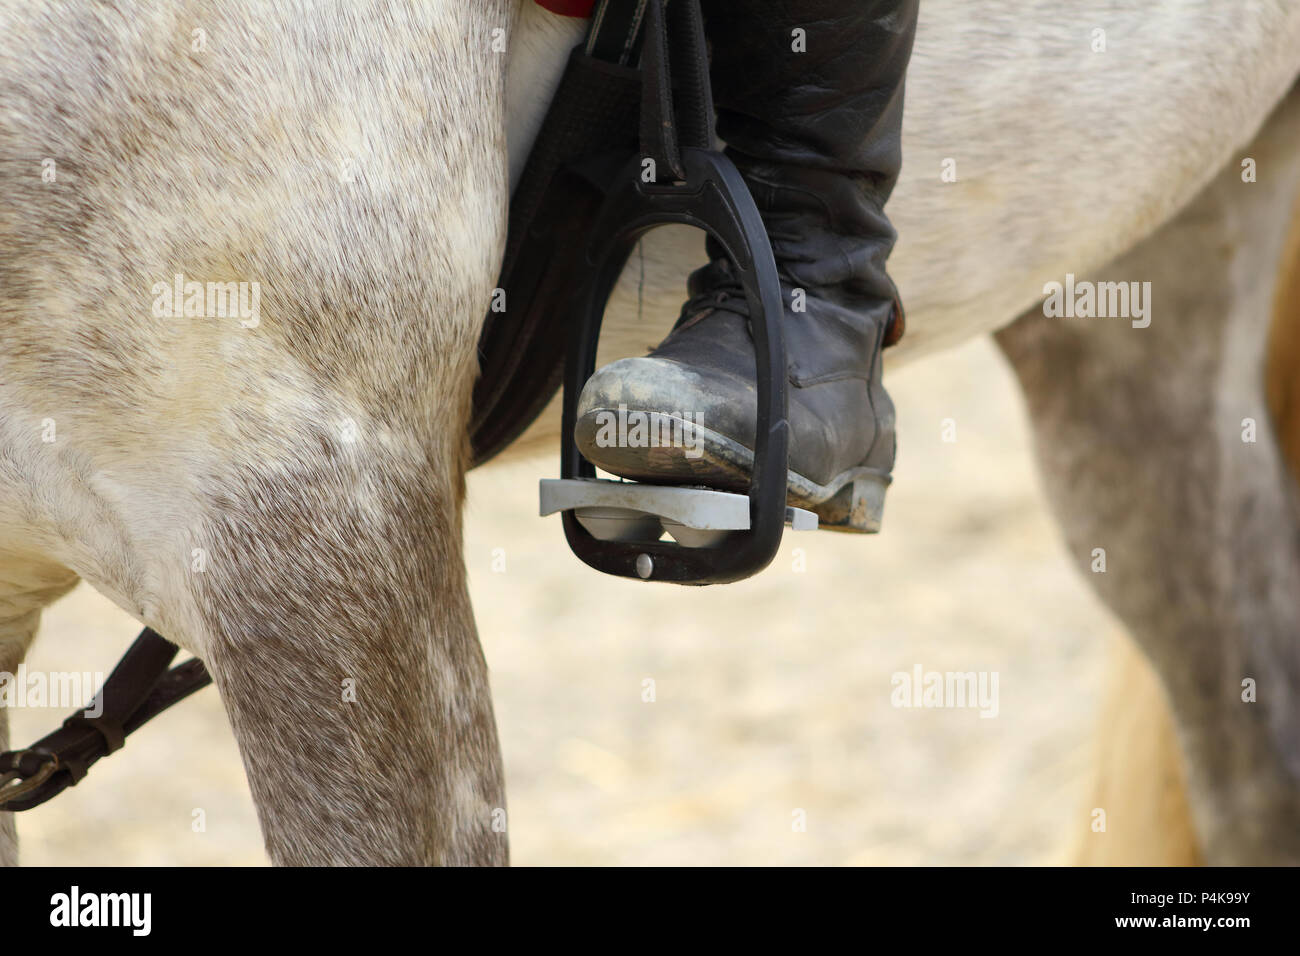 a black boot of rider in the stirrup tighten on the horse, the foot in the stirrup Stock Photo